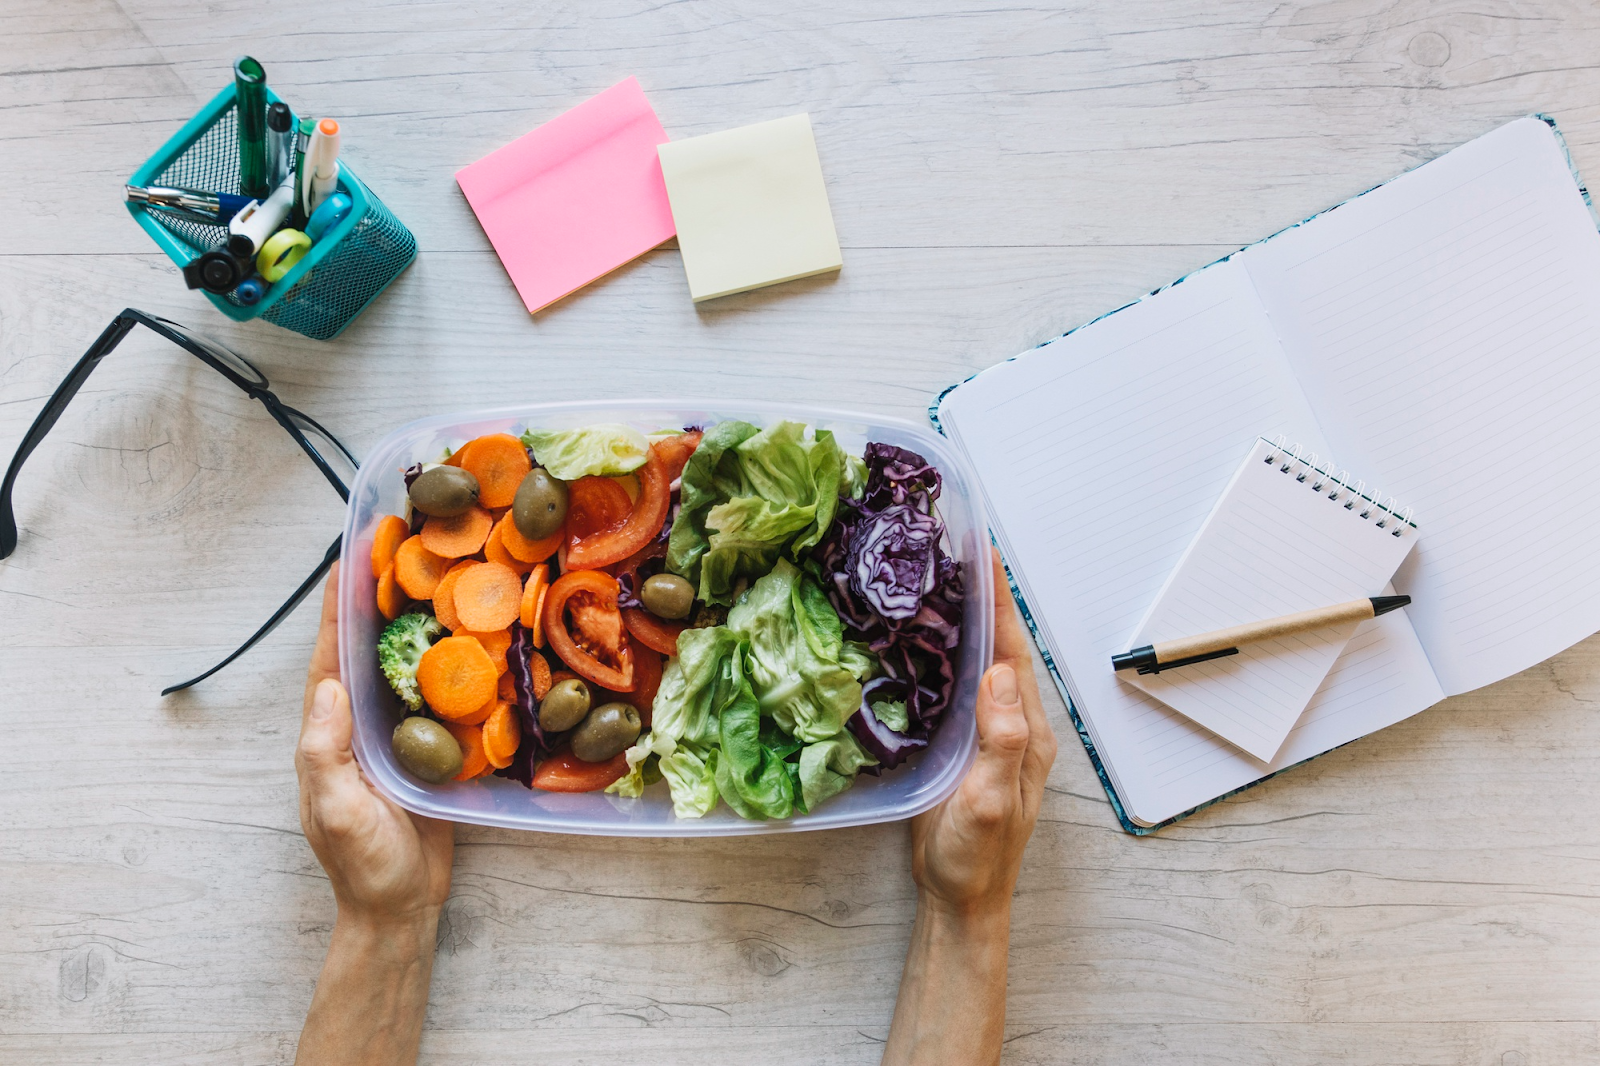 crop photo of hands holding a bowl of salad on office table